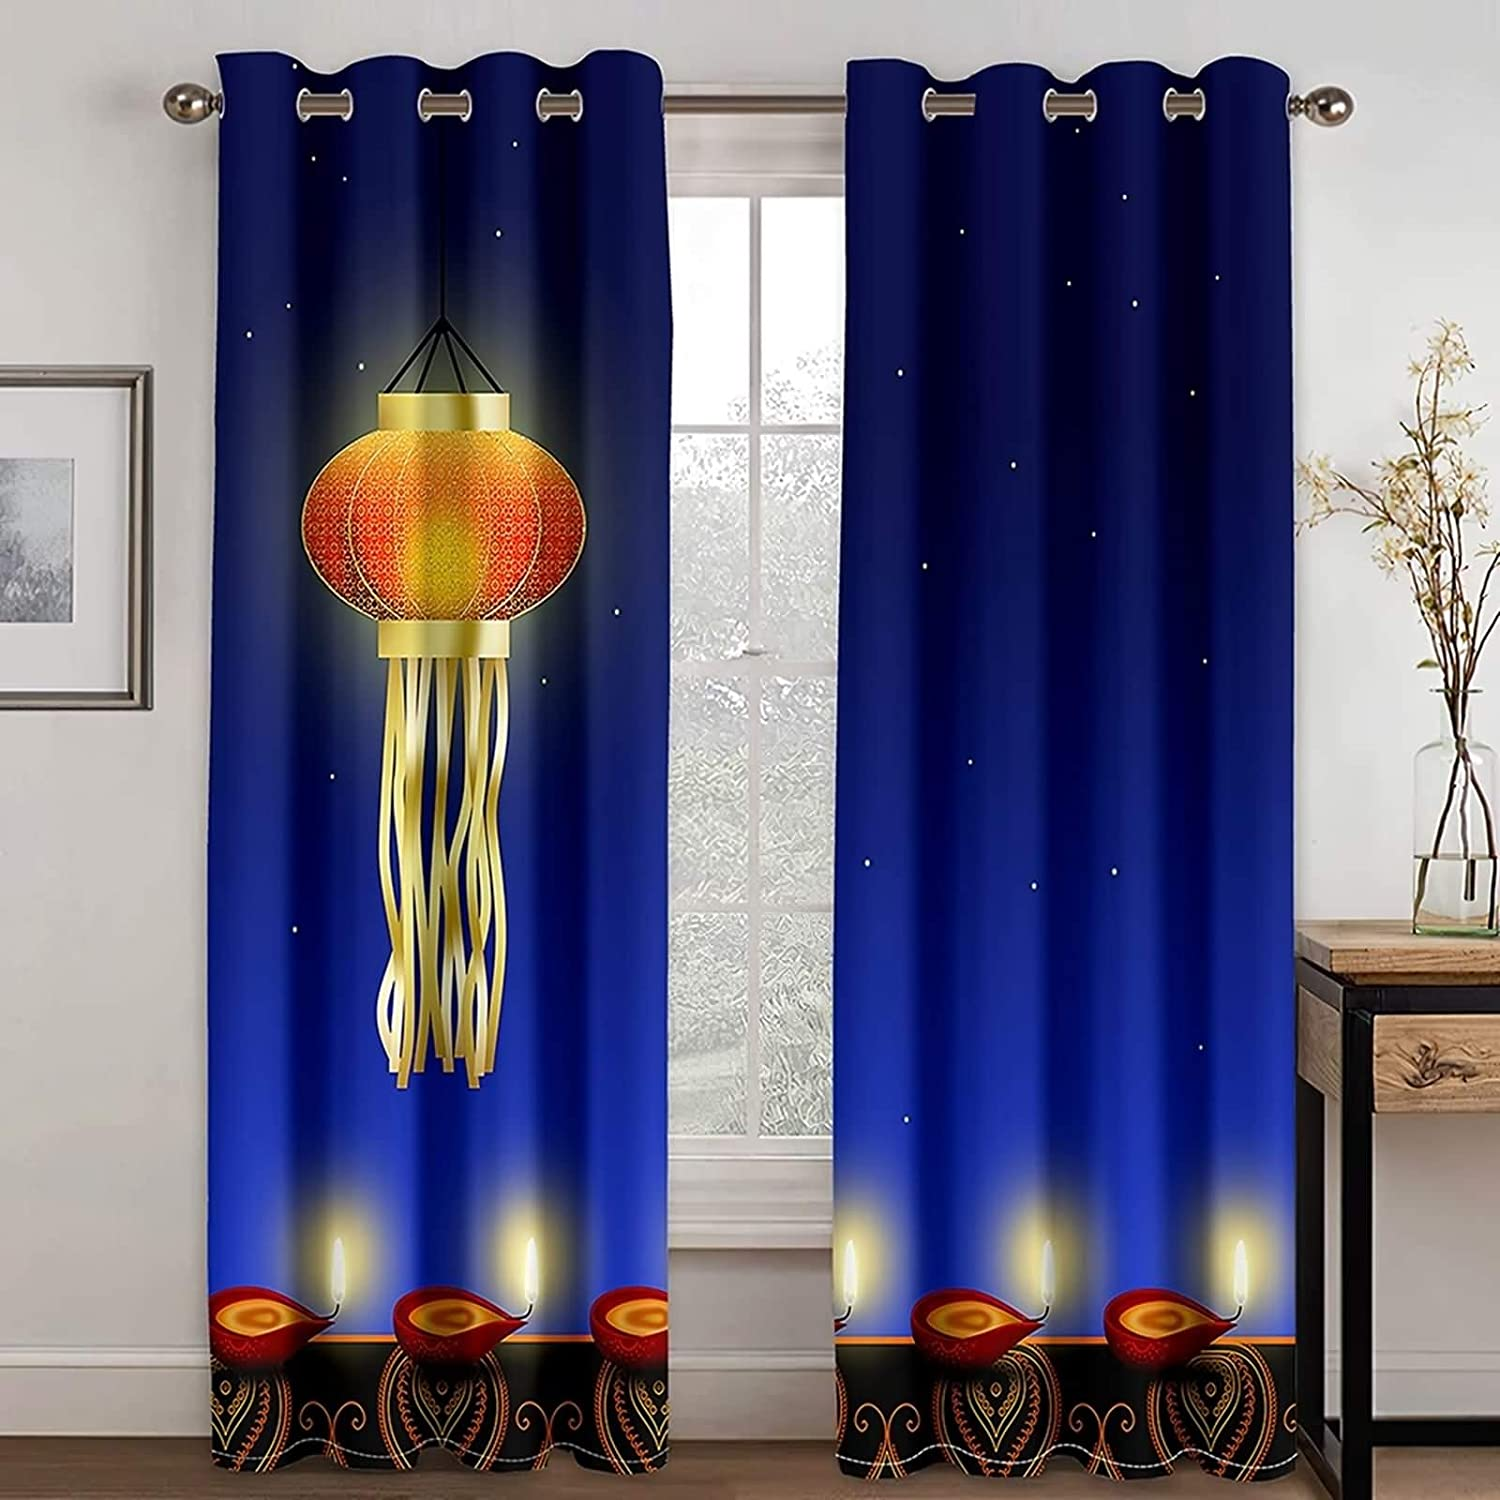 Indefinitely Daesar Curtains for Latest item Bedroom 2 Panels and Room Living K